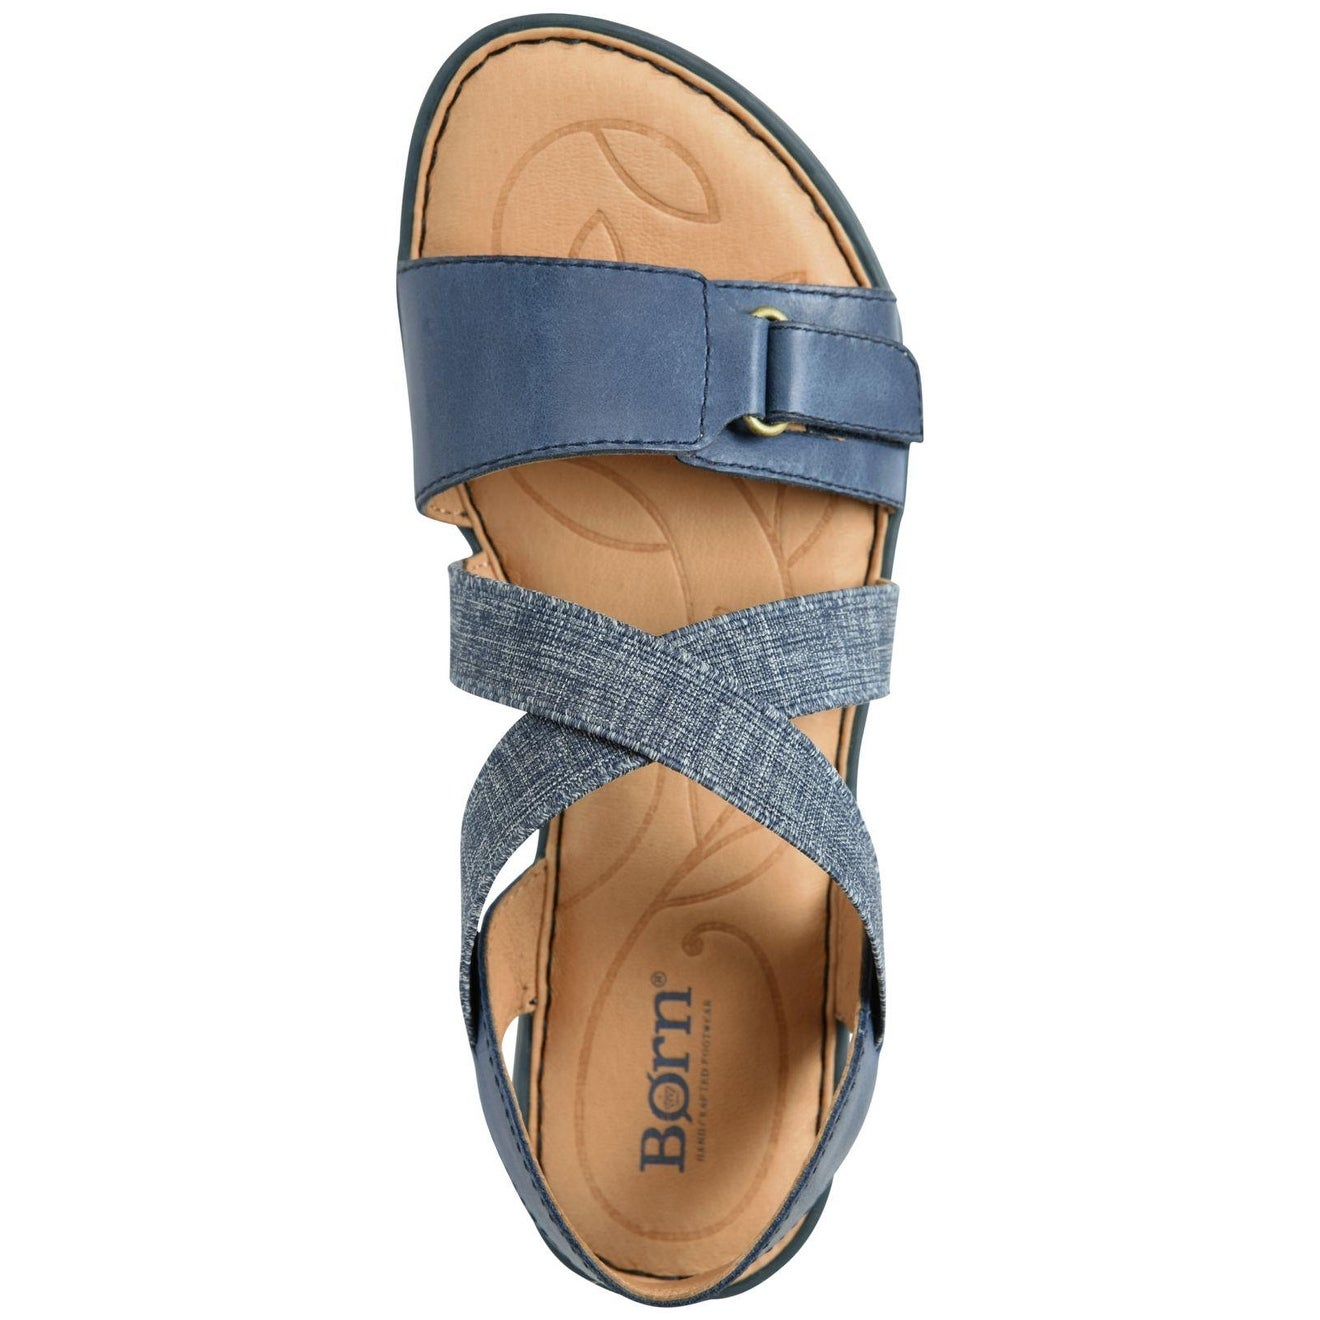 455686d51b0e Shop Born Womens Britton Leather Open Toe Casual Slide Sandals - Free  Shipping Today - Overstock - 17802807